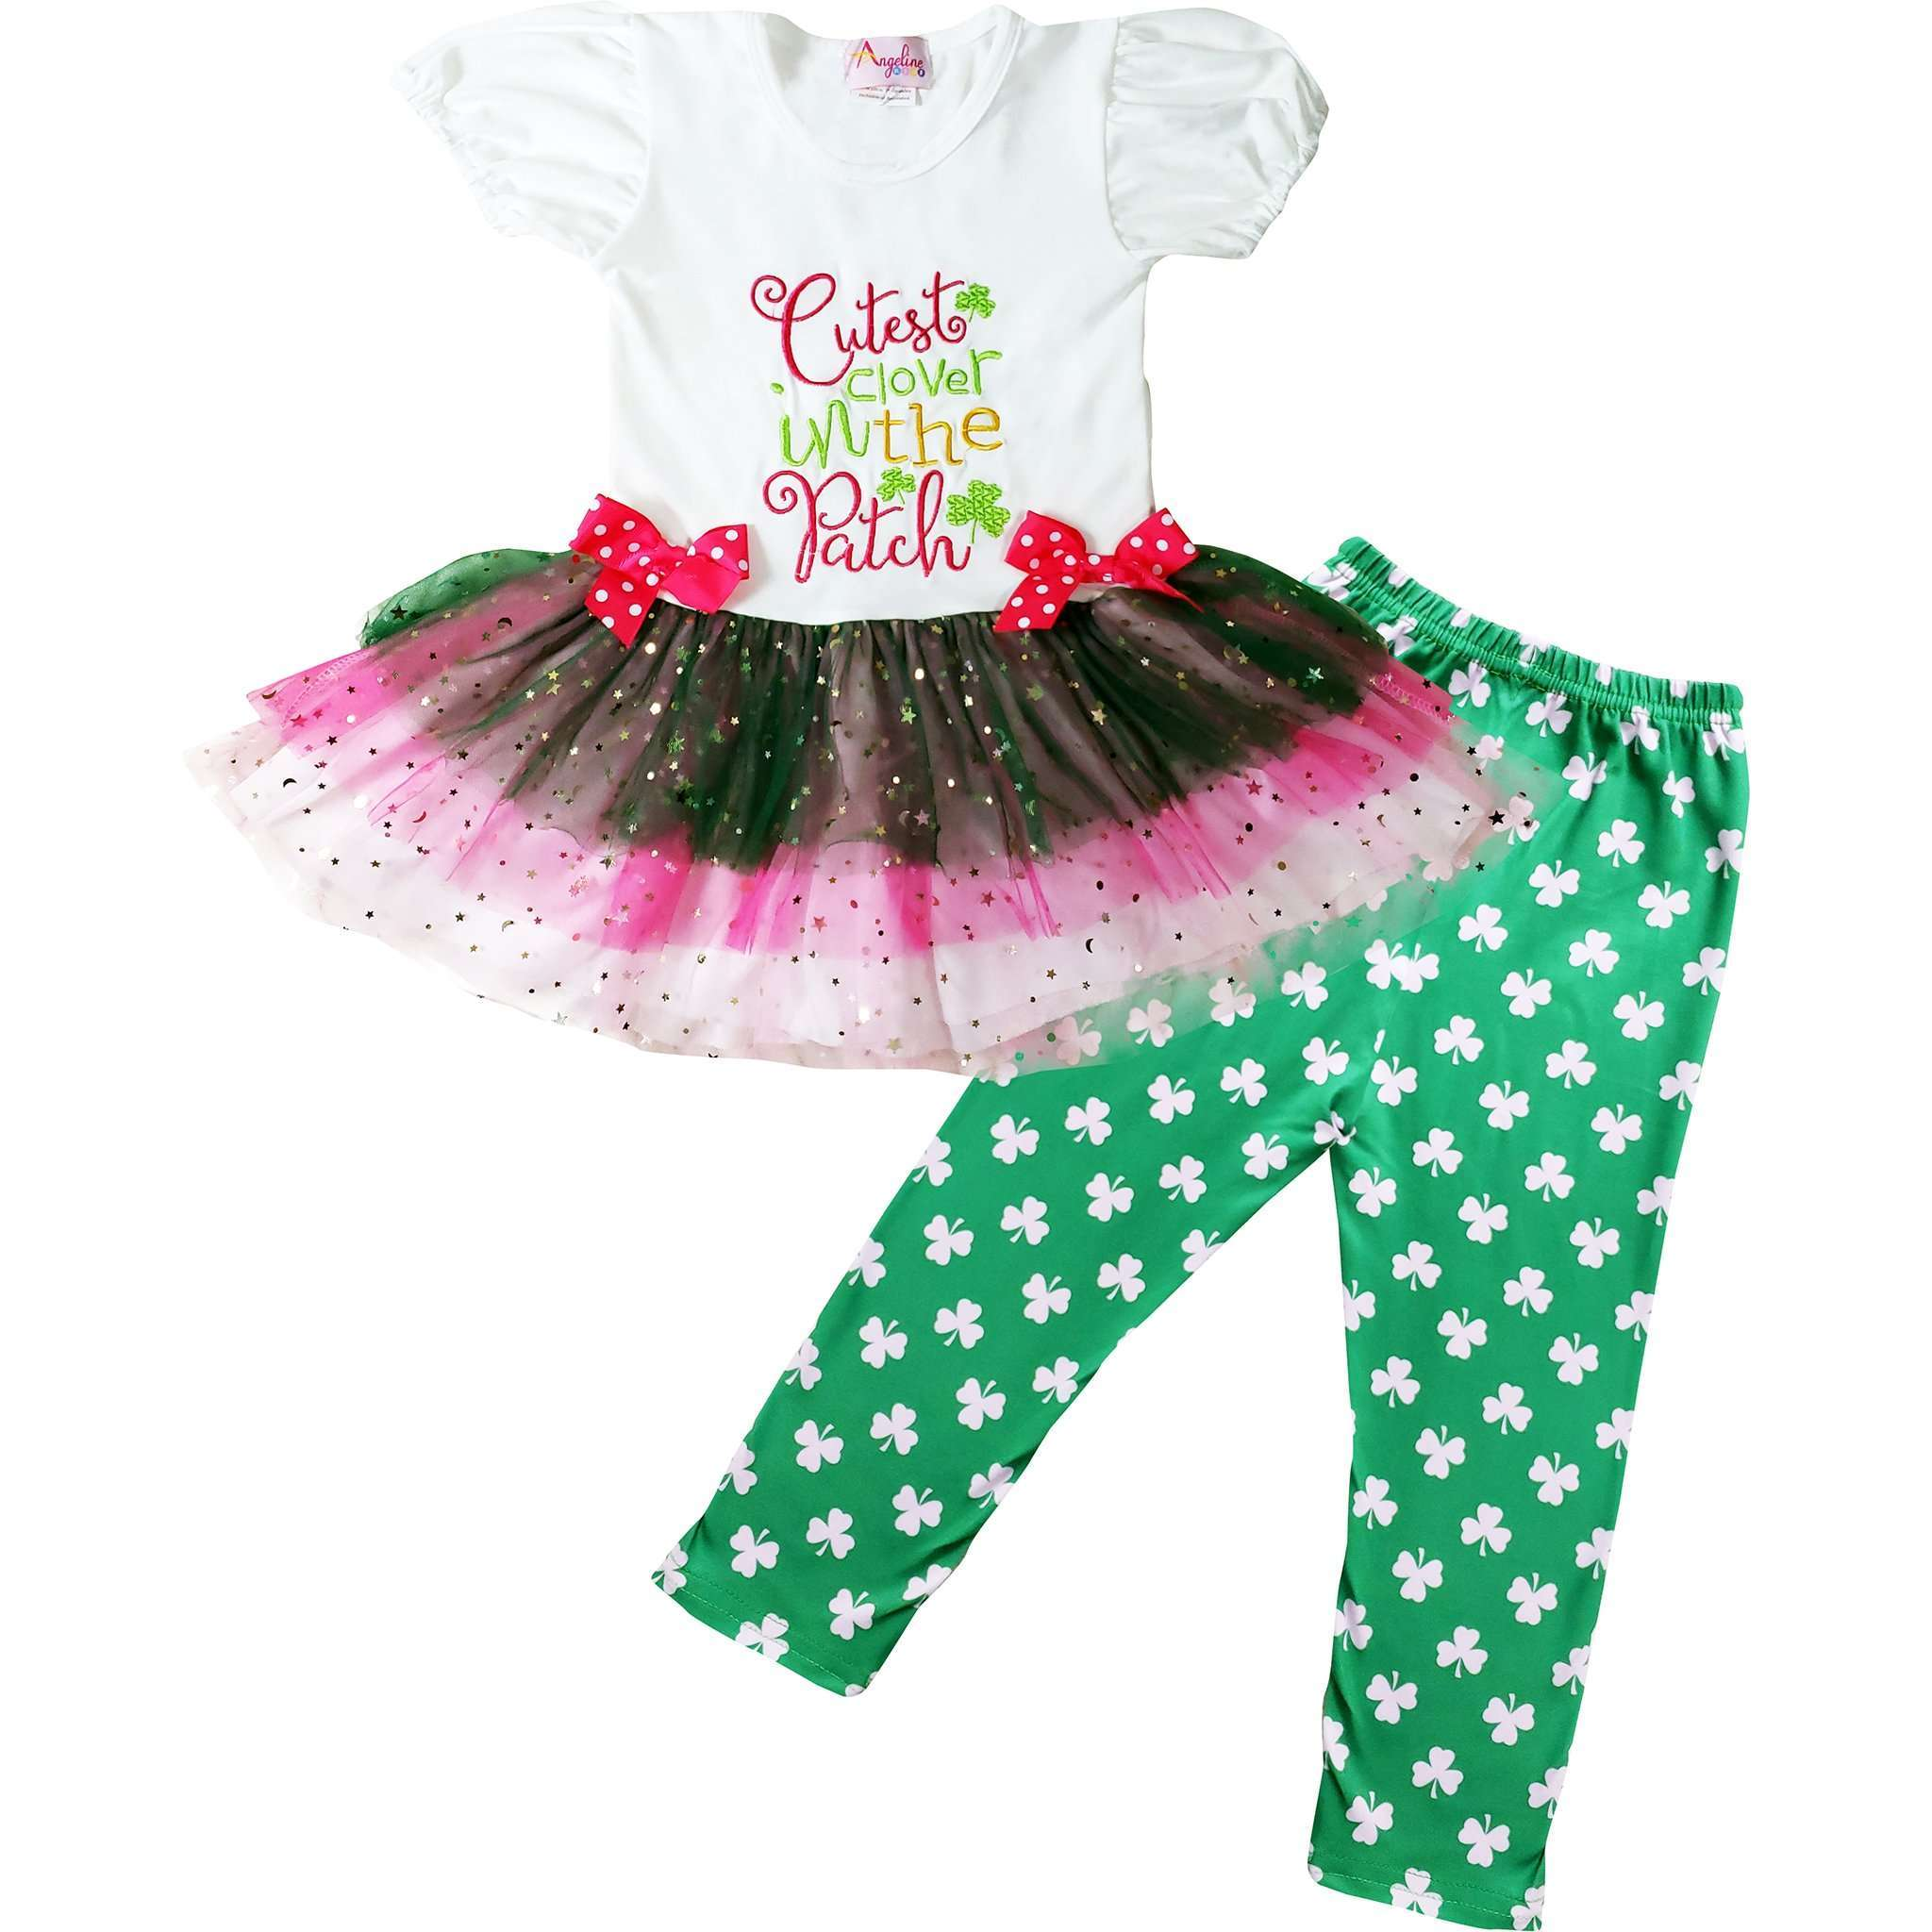 Angeline Kids:Baby Toddler Little Girls St. Patrick's Day Cutest Clover In The Patch Tutu Skirt Set